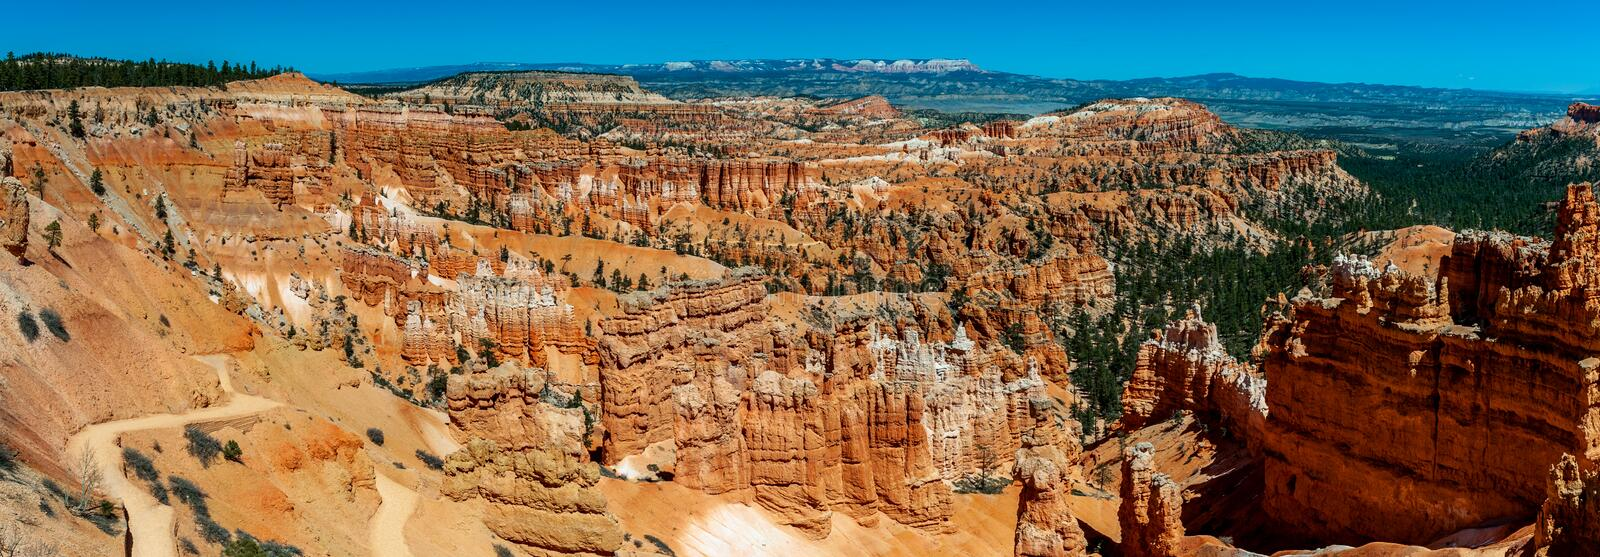 Panorama van Bryce Canyon National Park From Rim Trail stock afbeelding